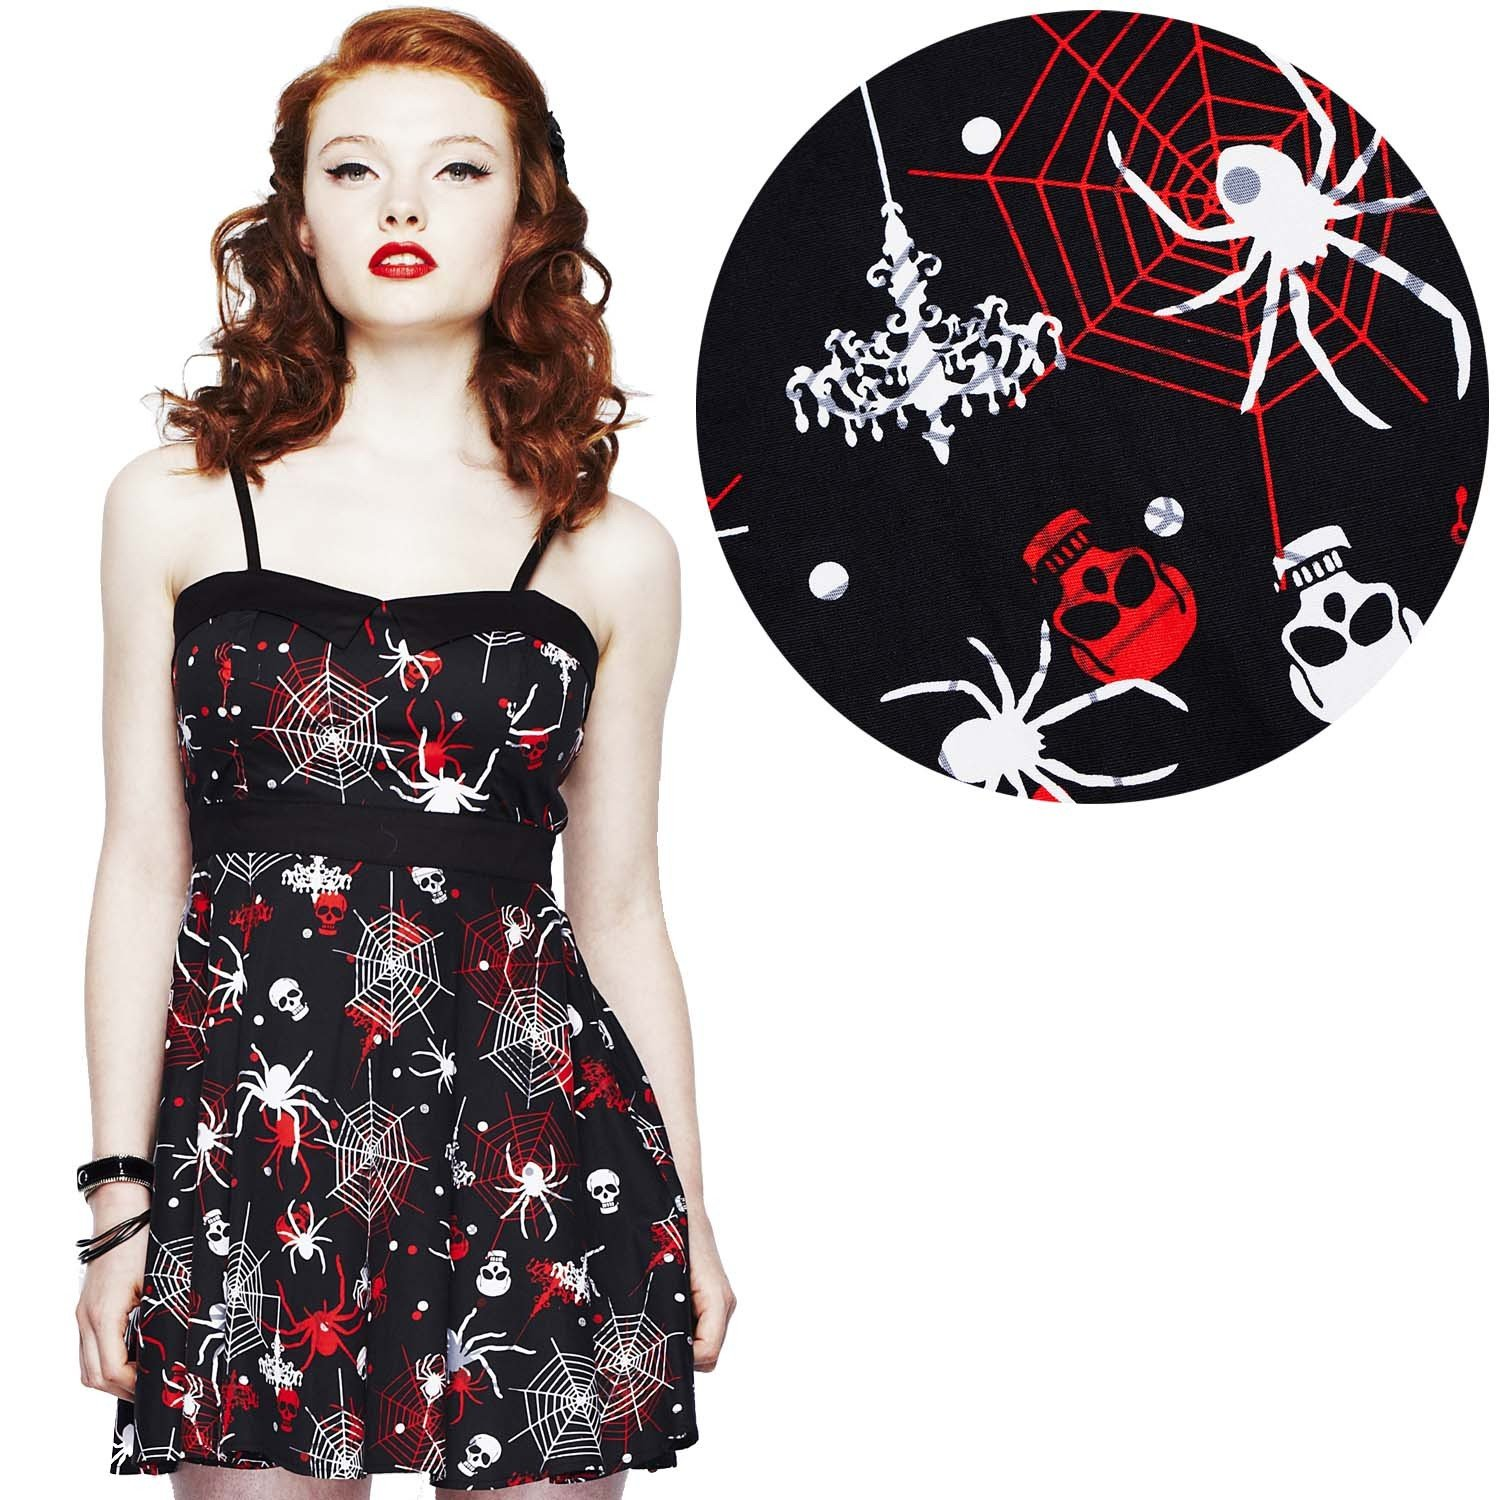 6073eb95b Hell Bunny Kirsty Gothic Skull Spider Web Mini Dress (XLarge) at ...